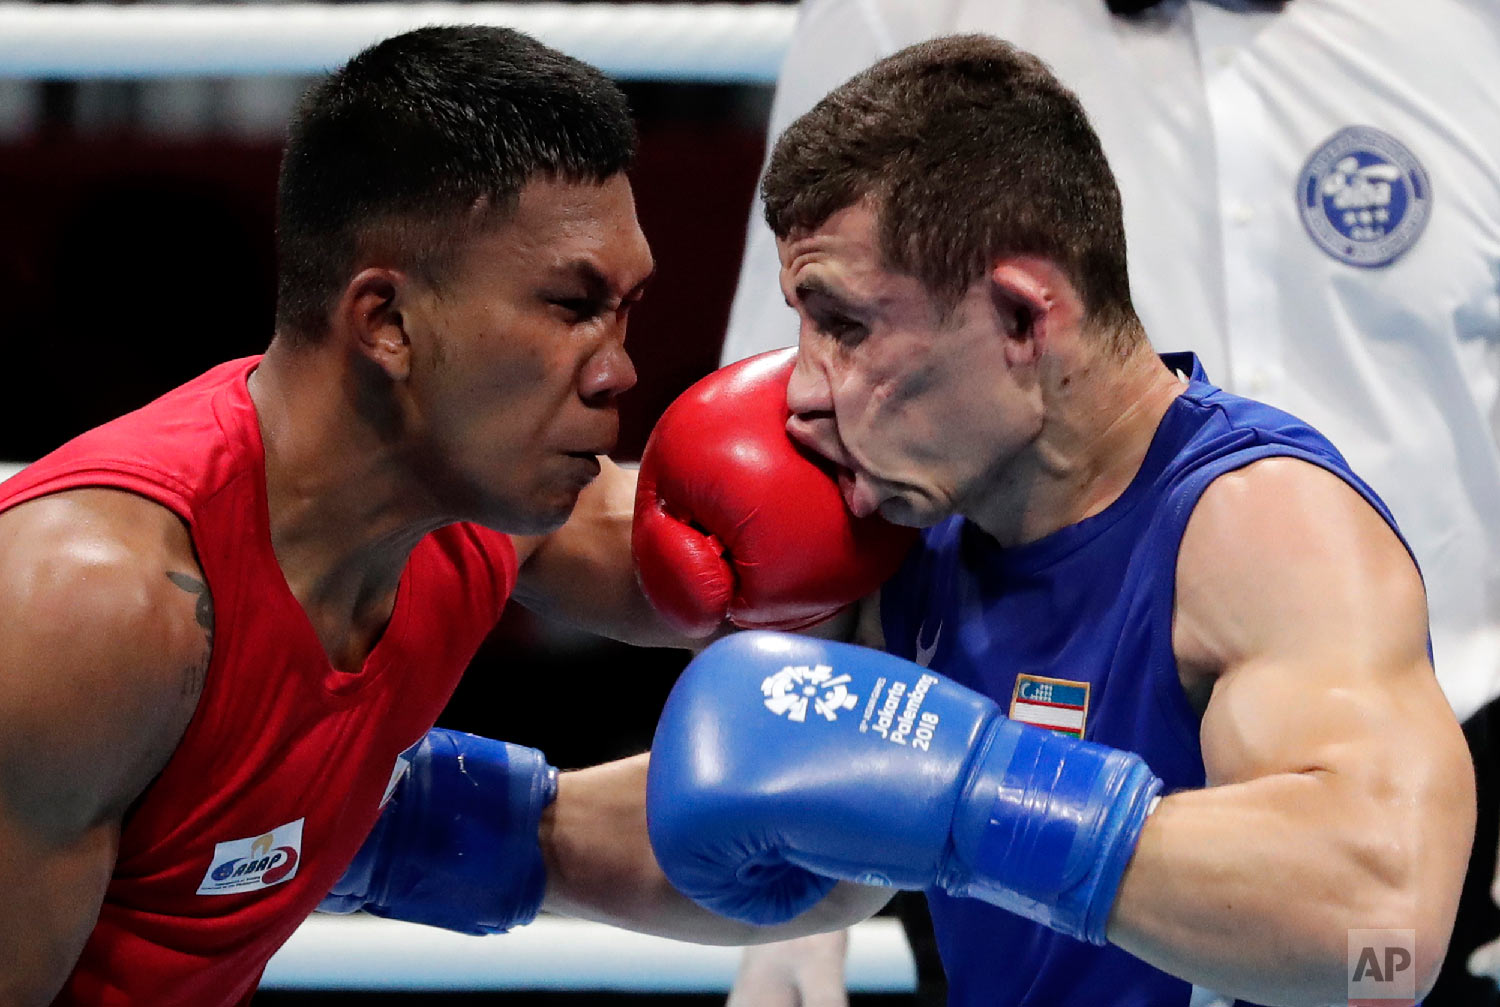 Phillippines' Eumir Felix Marcial, red, and Uzbekistan's Israil Madrimov fight in their men's middleweight boxing semifinal at the 18th Asian Games in Jakarta, Indonesia, Friday, Aug. 31, 2018. (AP Photo/Lee Jin-man)